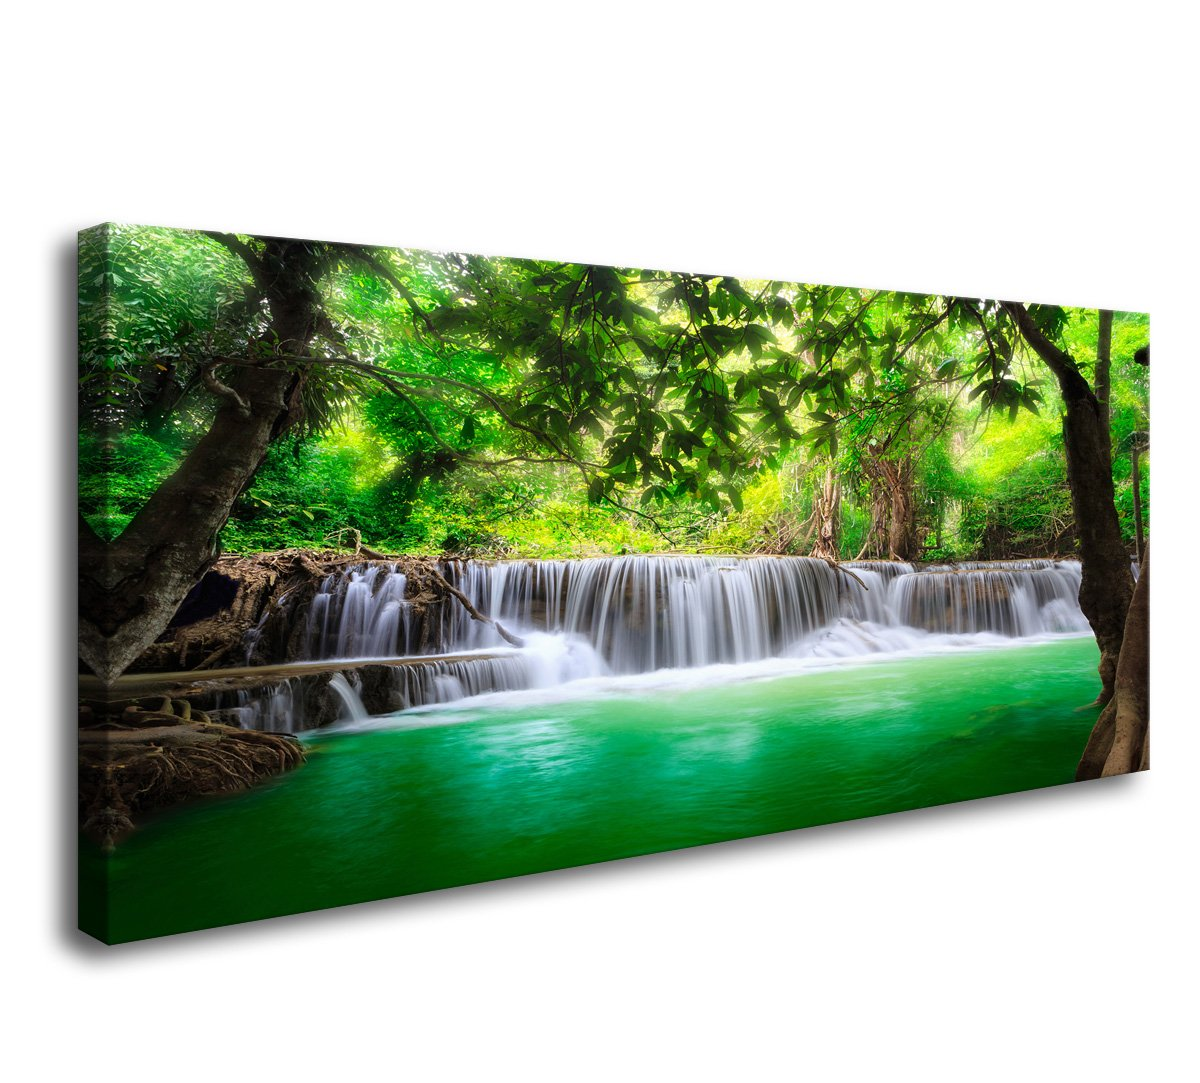 Trees Landscape Home Decor Wall Art Poster /& Canvas Pictures Forest Waterfall